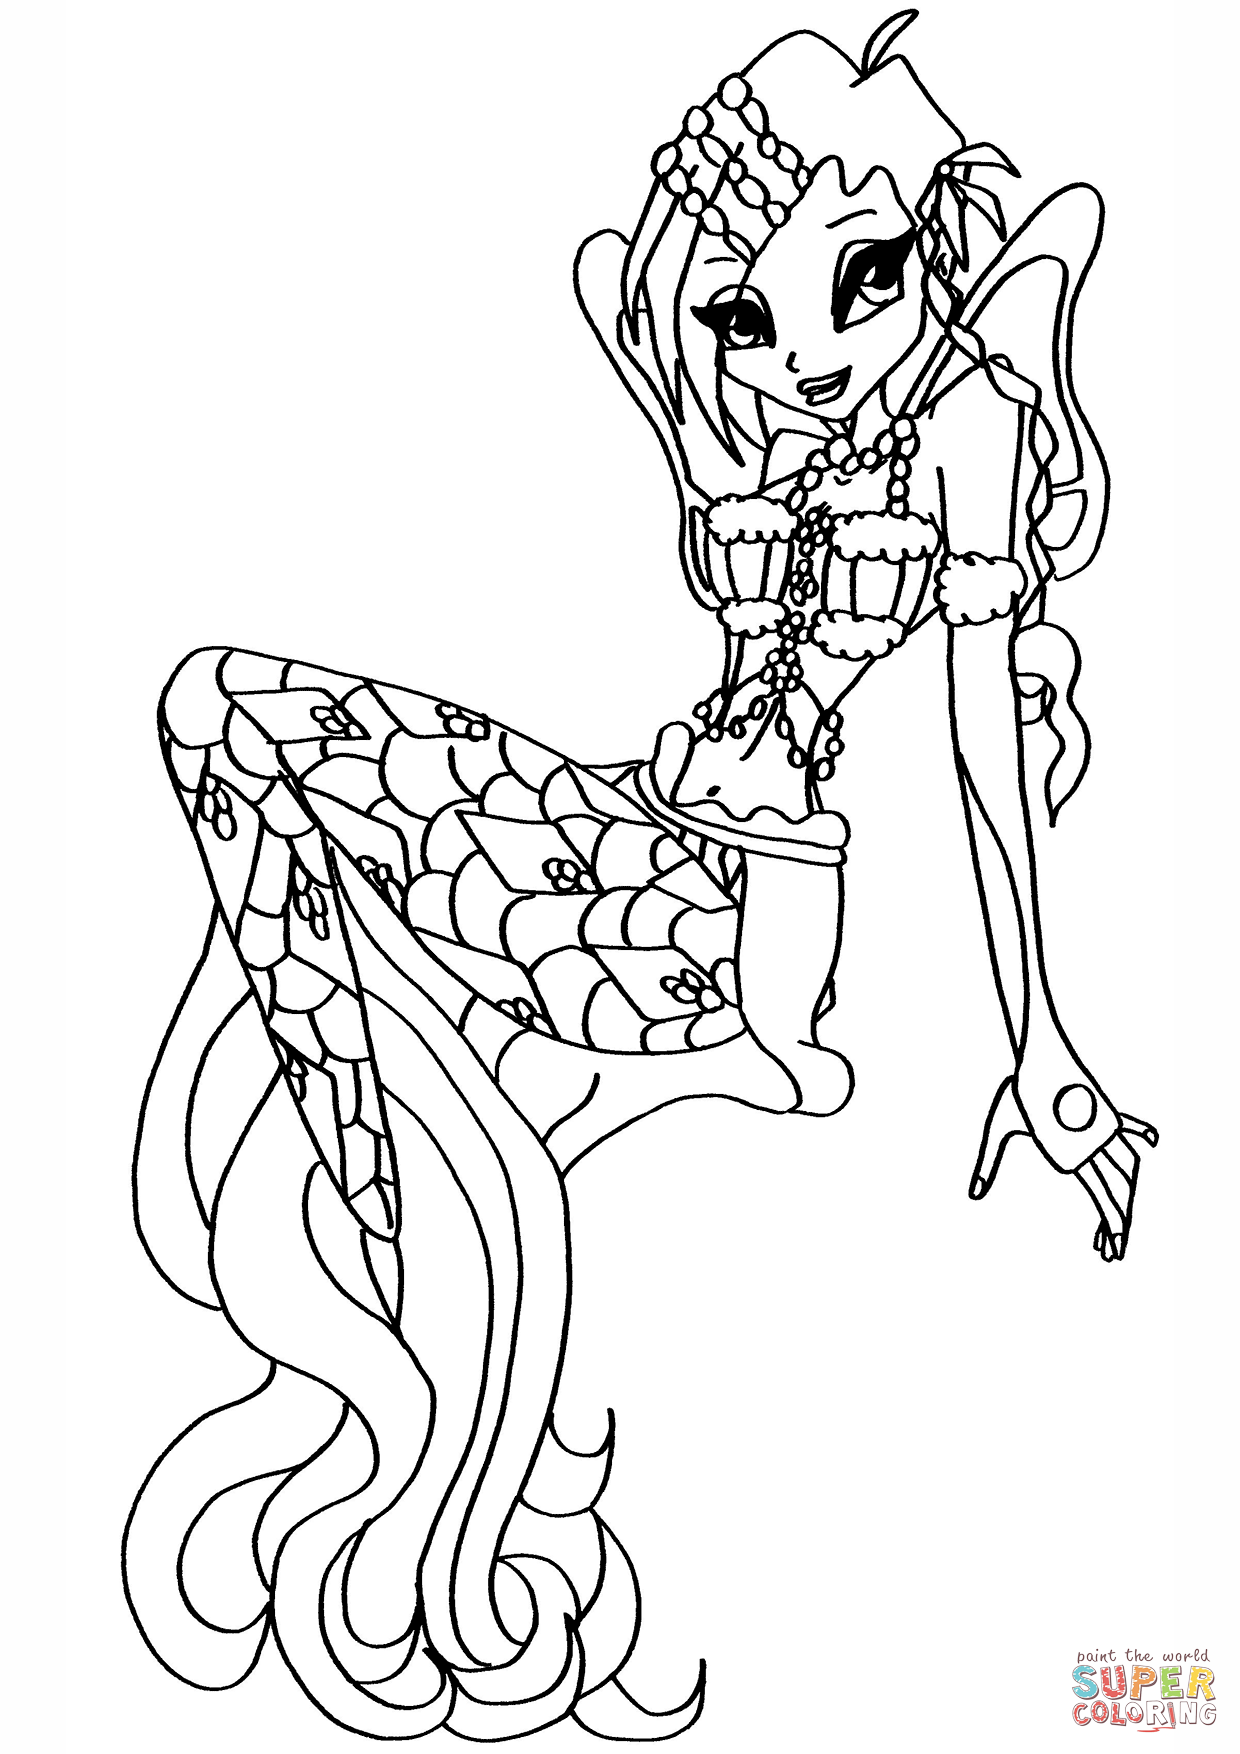 Winx club coloring pages - Google Search | Coloring: People ...